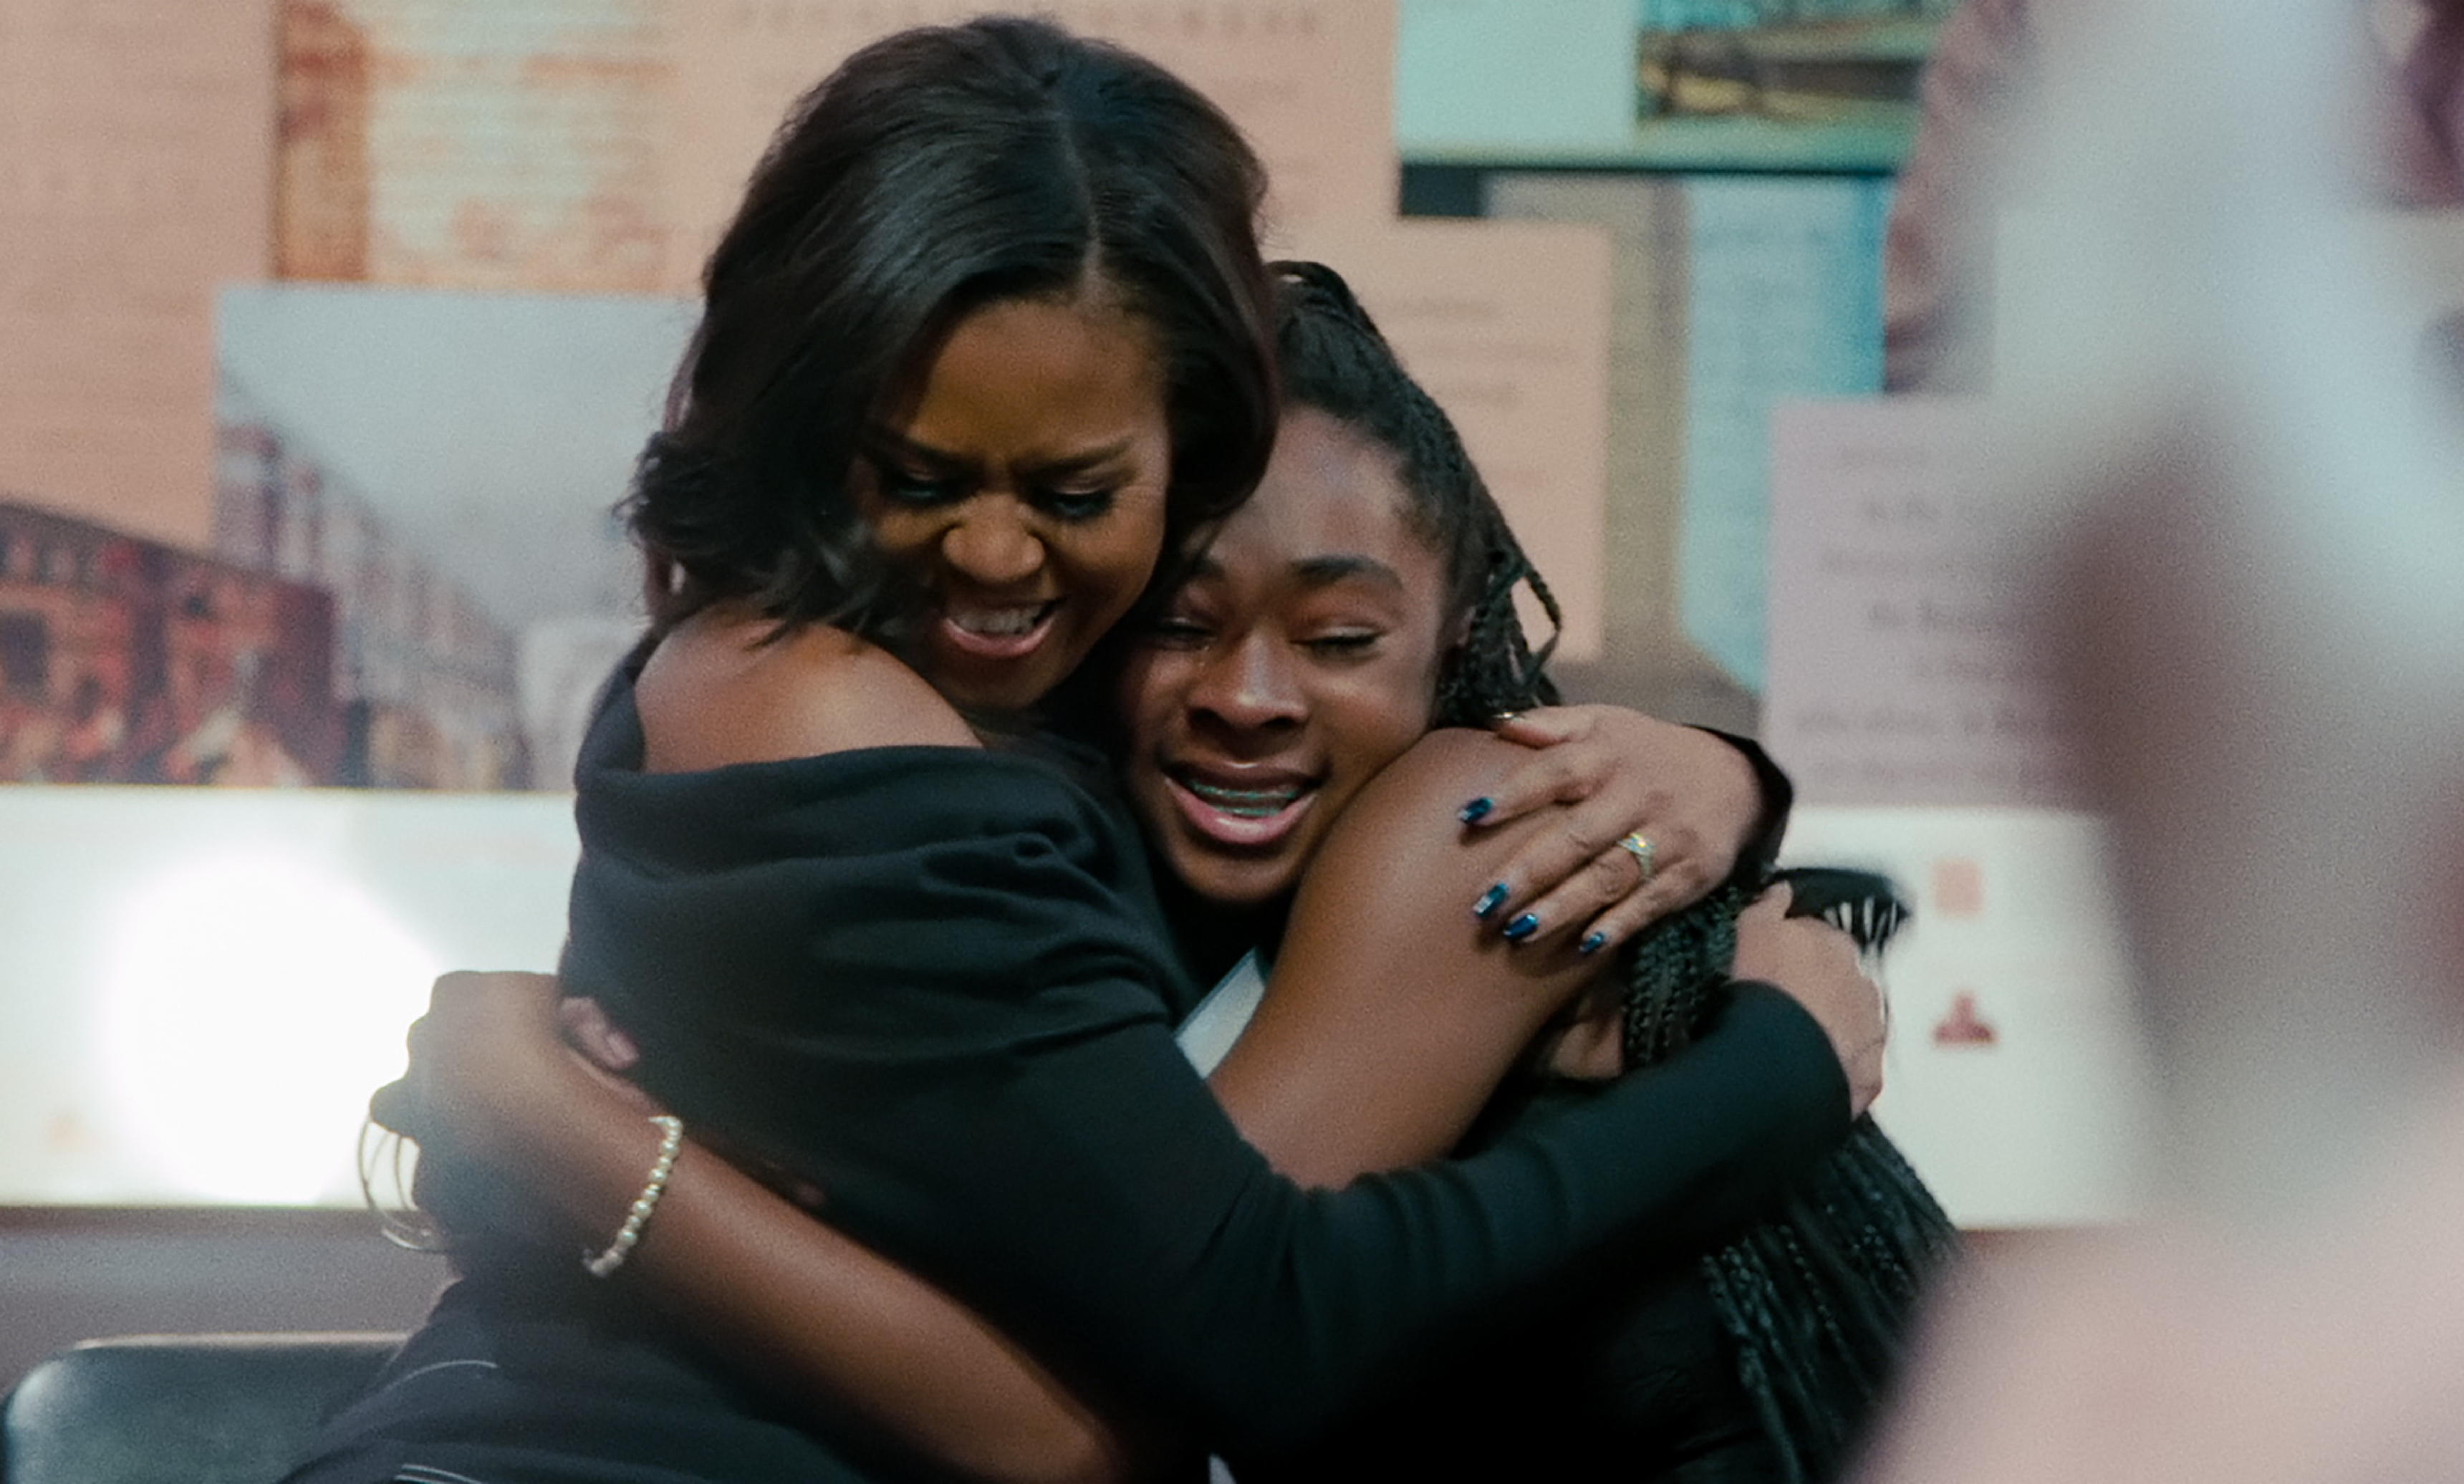 The first lady smiles as she pulls a student into a tight hug.